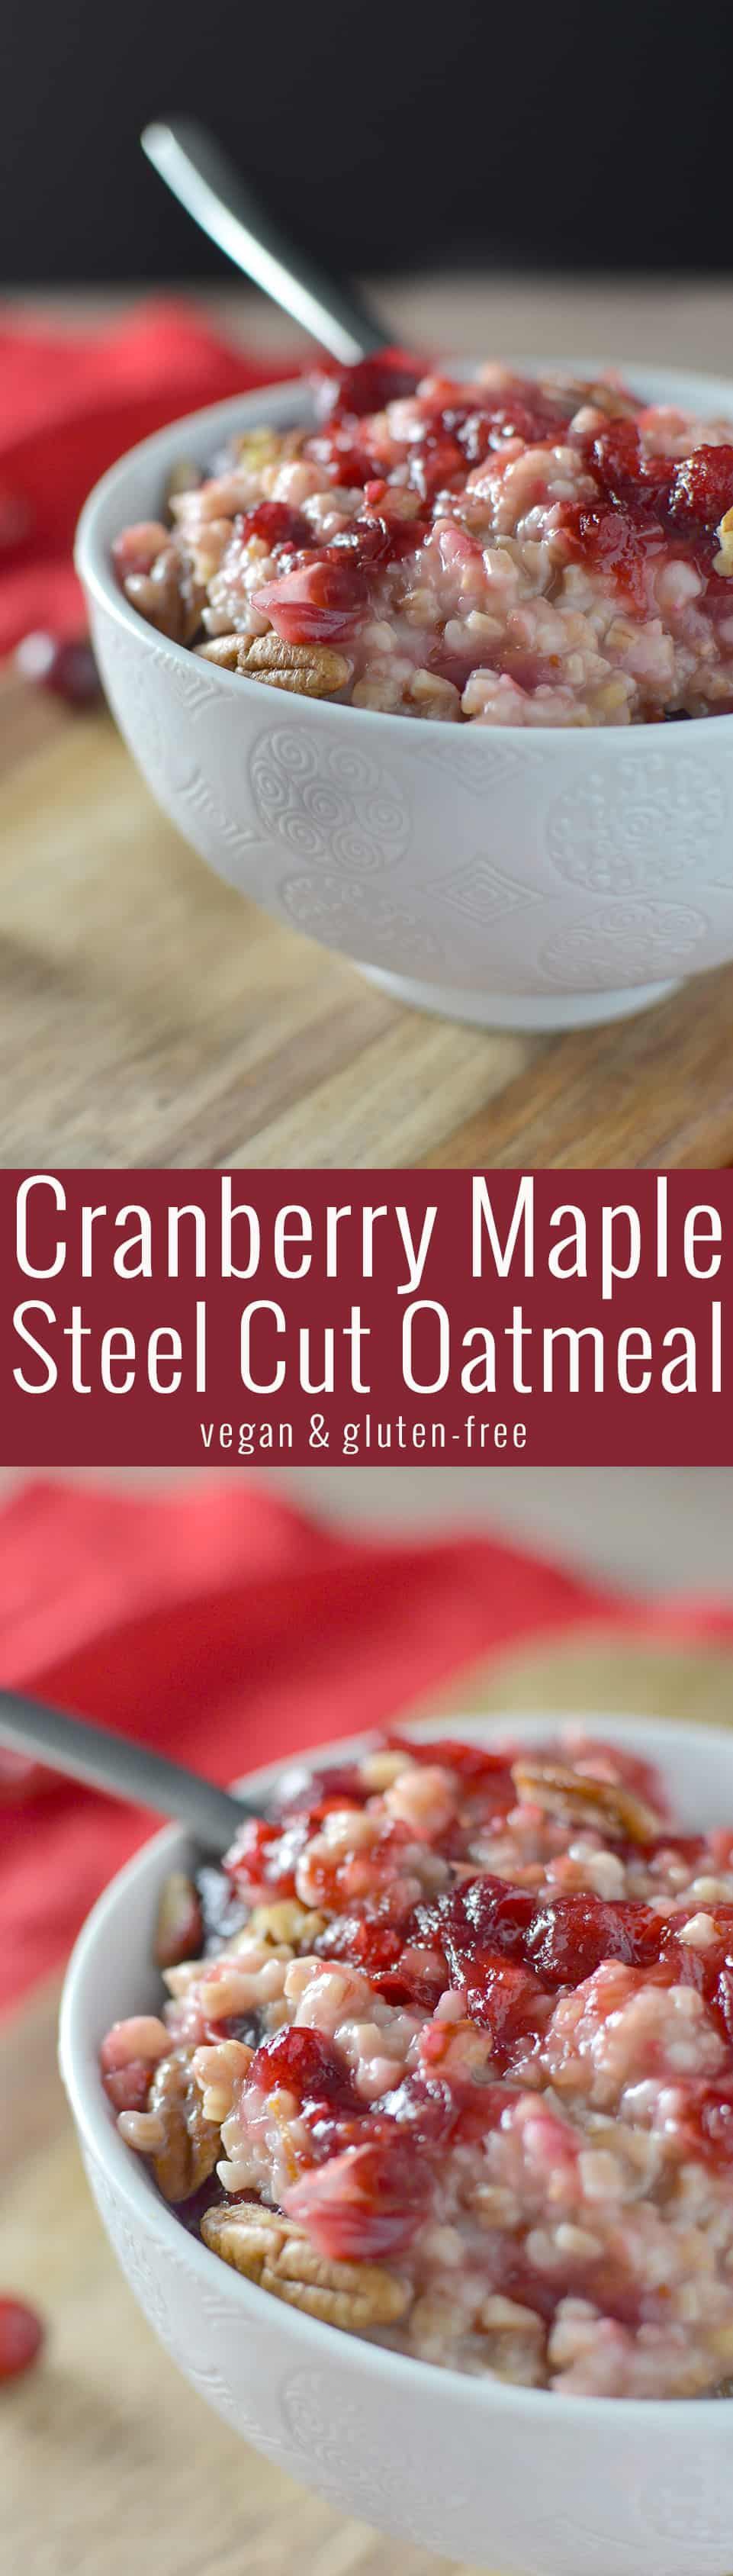 Cranberry Maple Steel Cut Oatmeal! This healthy, vegan and glutenfree breakfast is packed with holiday flavors! Fresh cranberry maple sauce, orange zest and pecans. A must-make! | www.delishknowledge.com